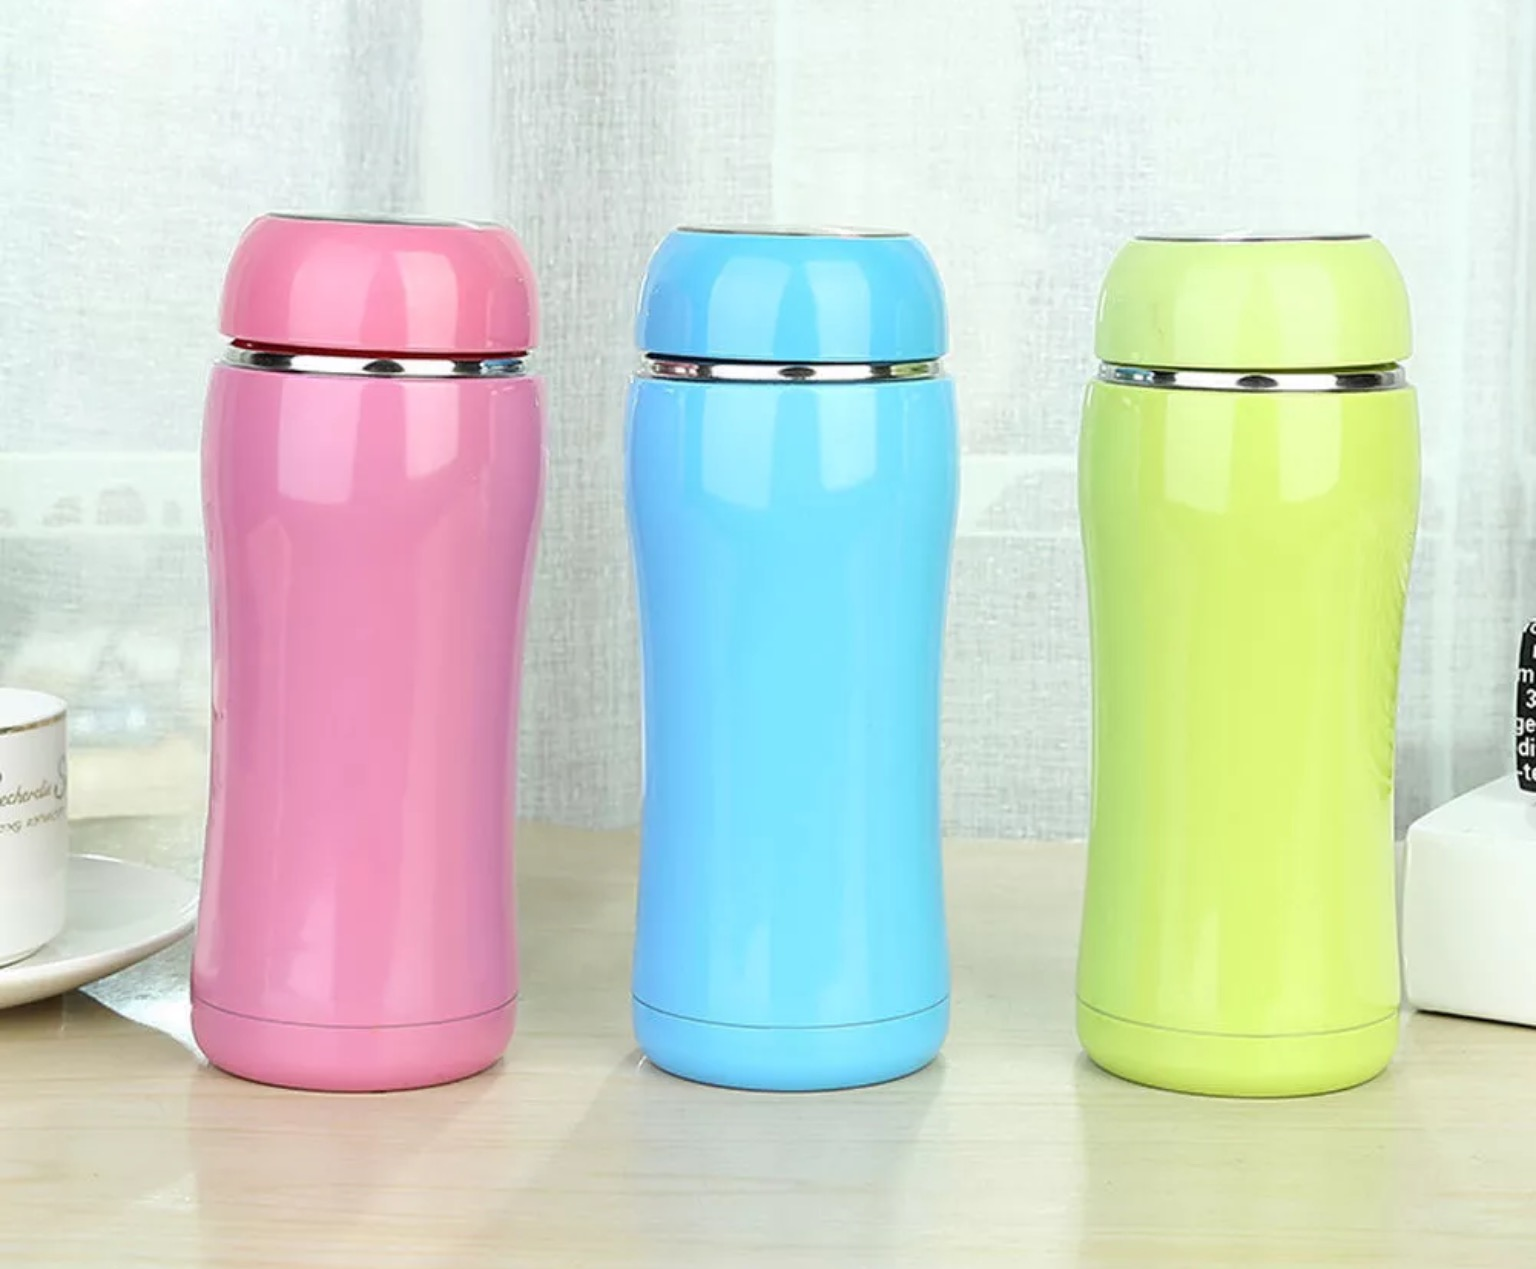 Steel Travel By Vacuum Insulated Stainless Nurse Coffee Sold Thermos The Mug Zone Tumbler Igv7yfbY6